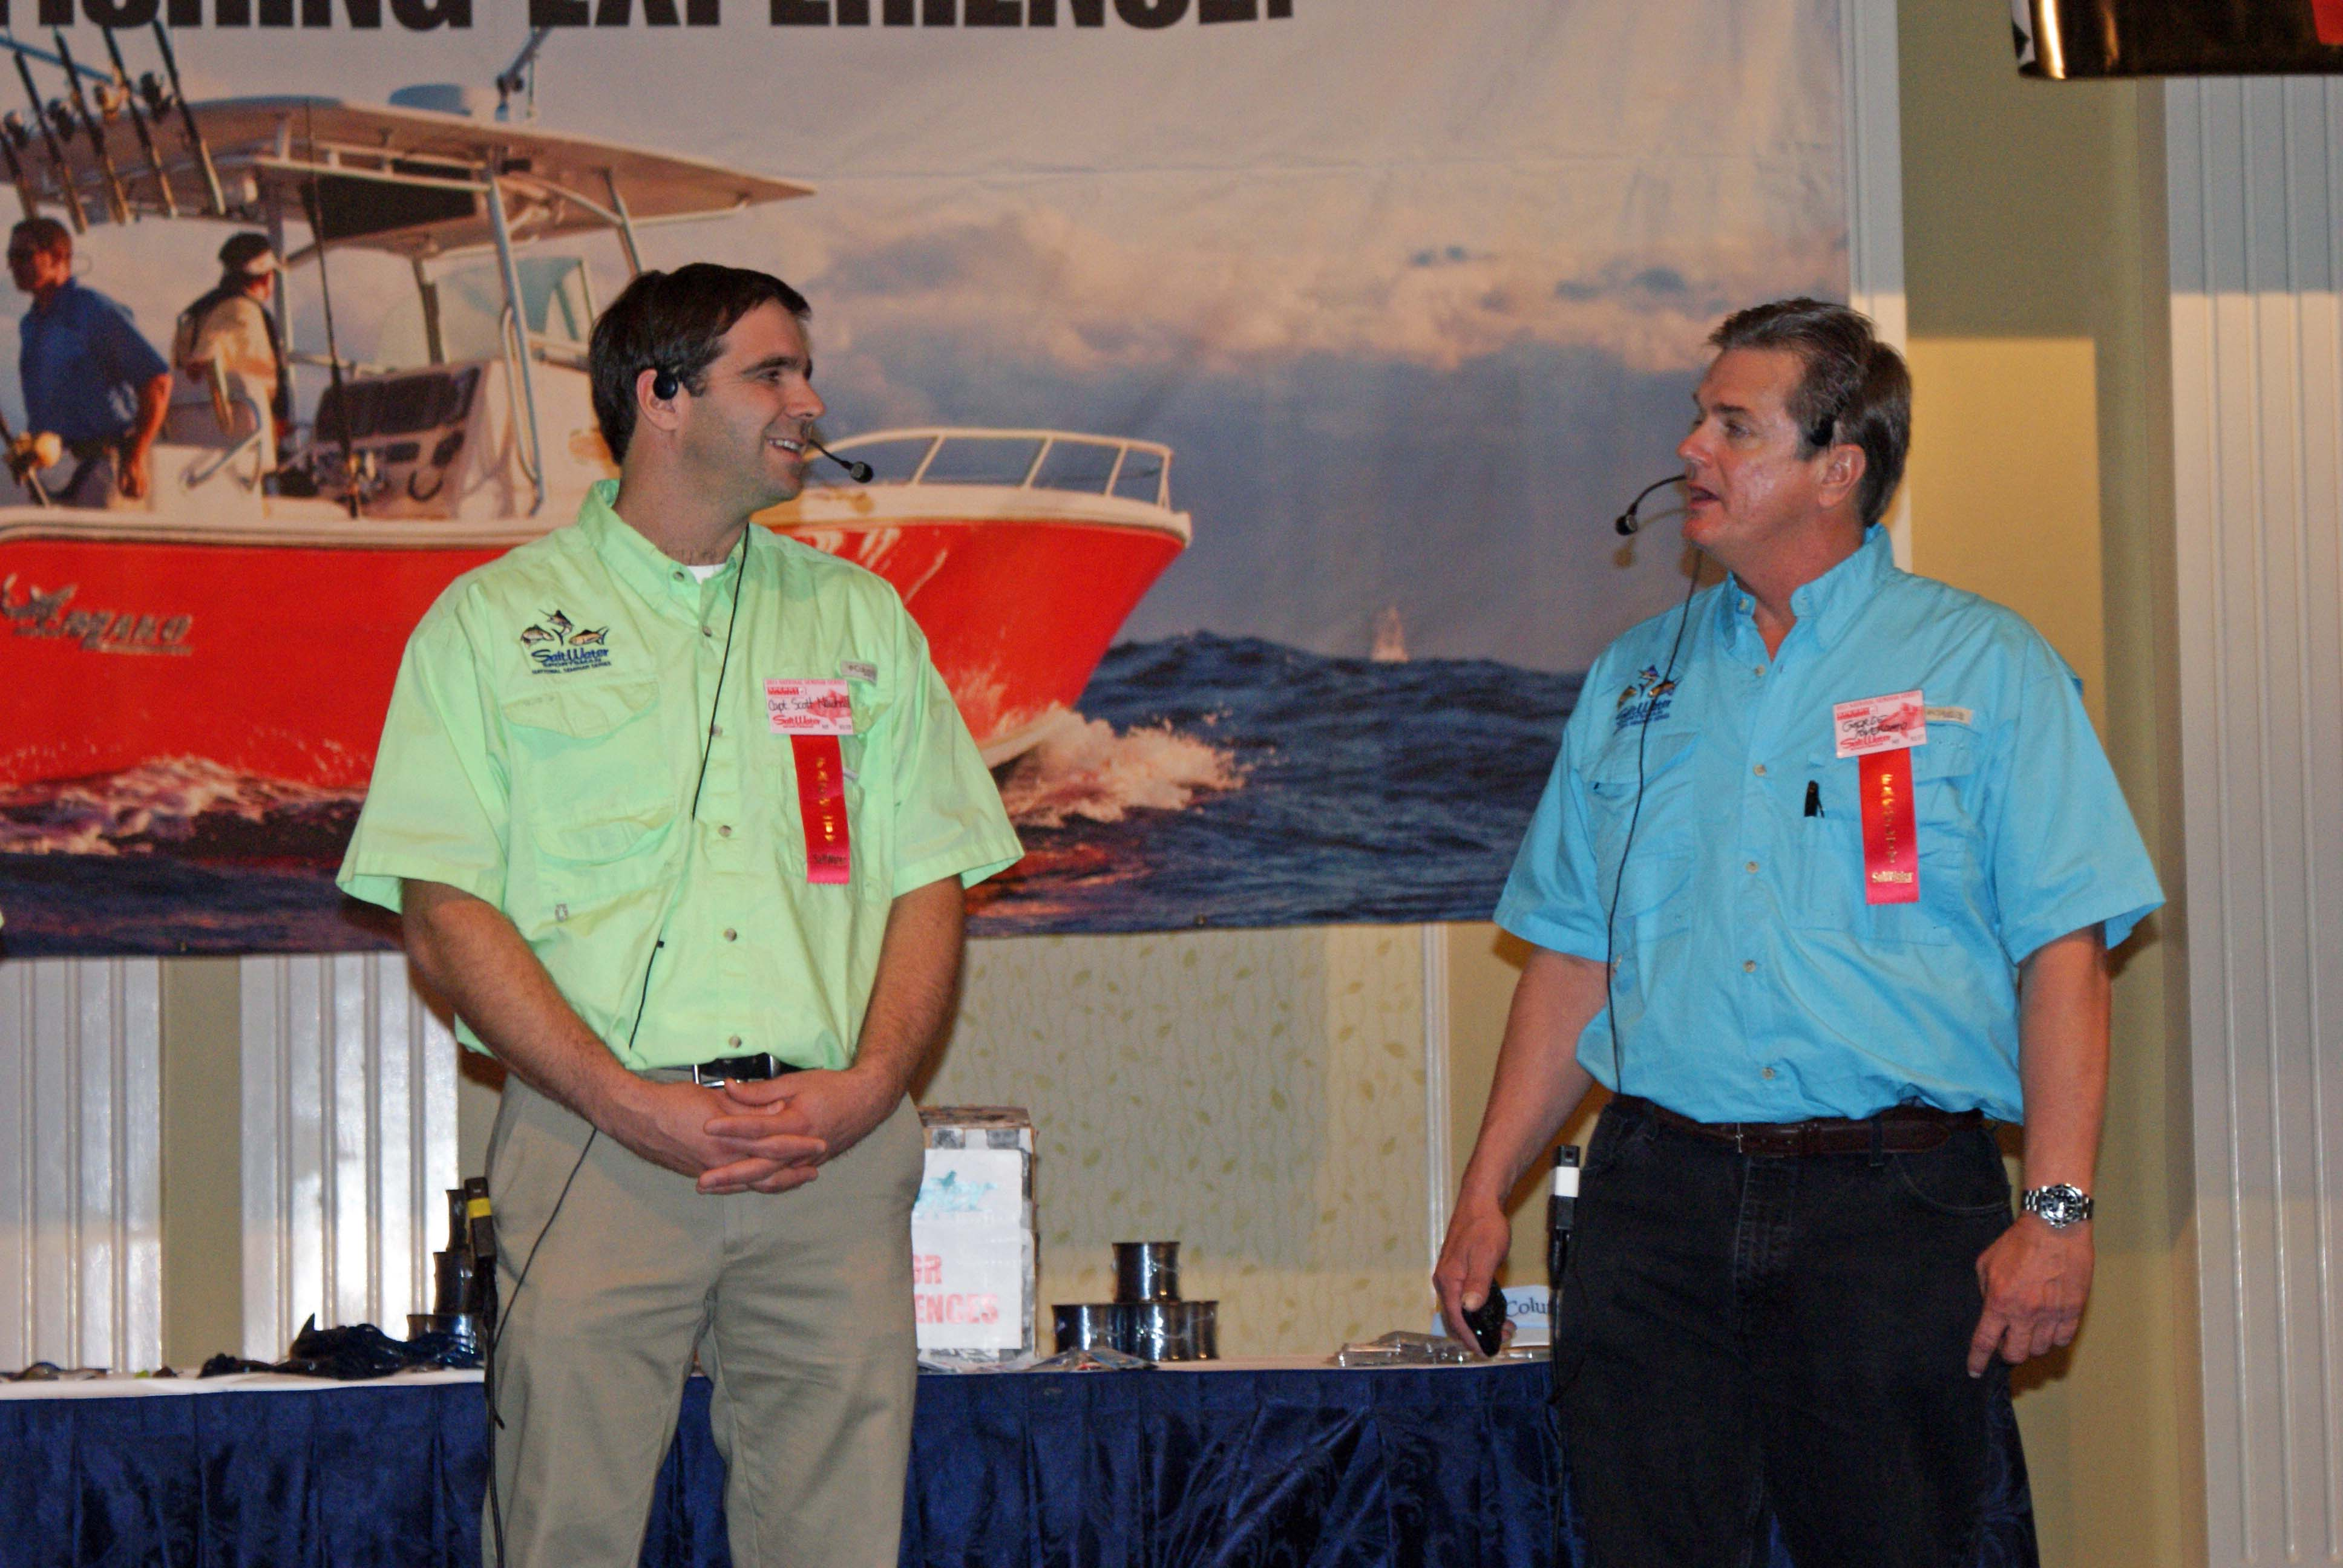 Saltwater Sportsman seminar series in Atlantic city featured capt. scott discussing flounder fishing in the back bay and atlantic ocean.